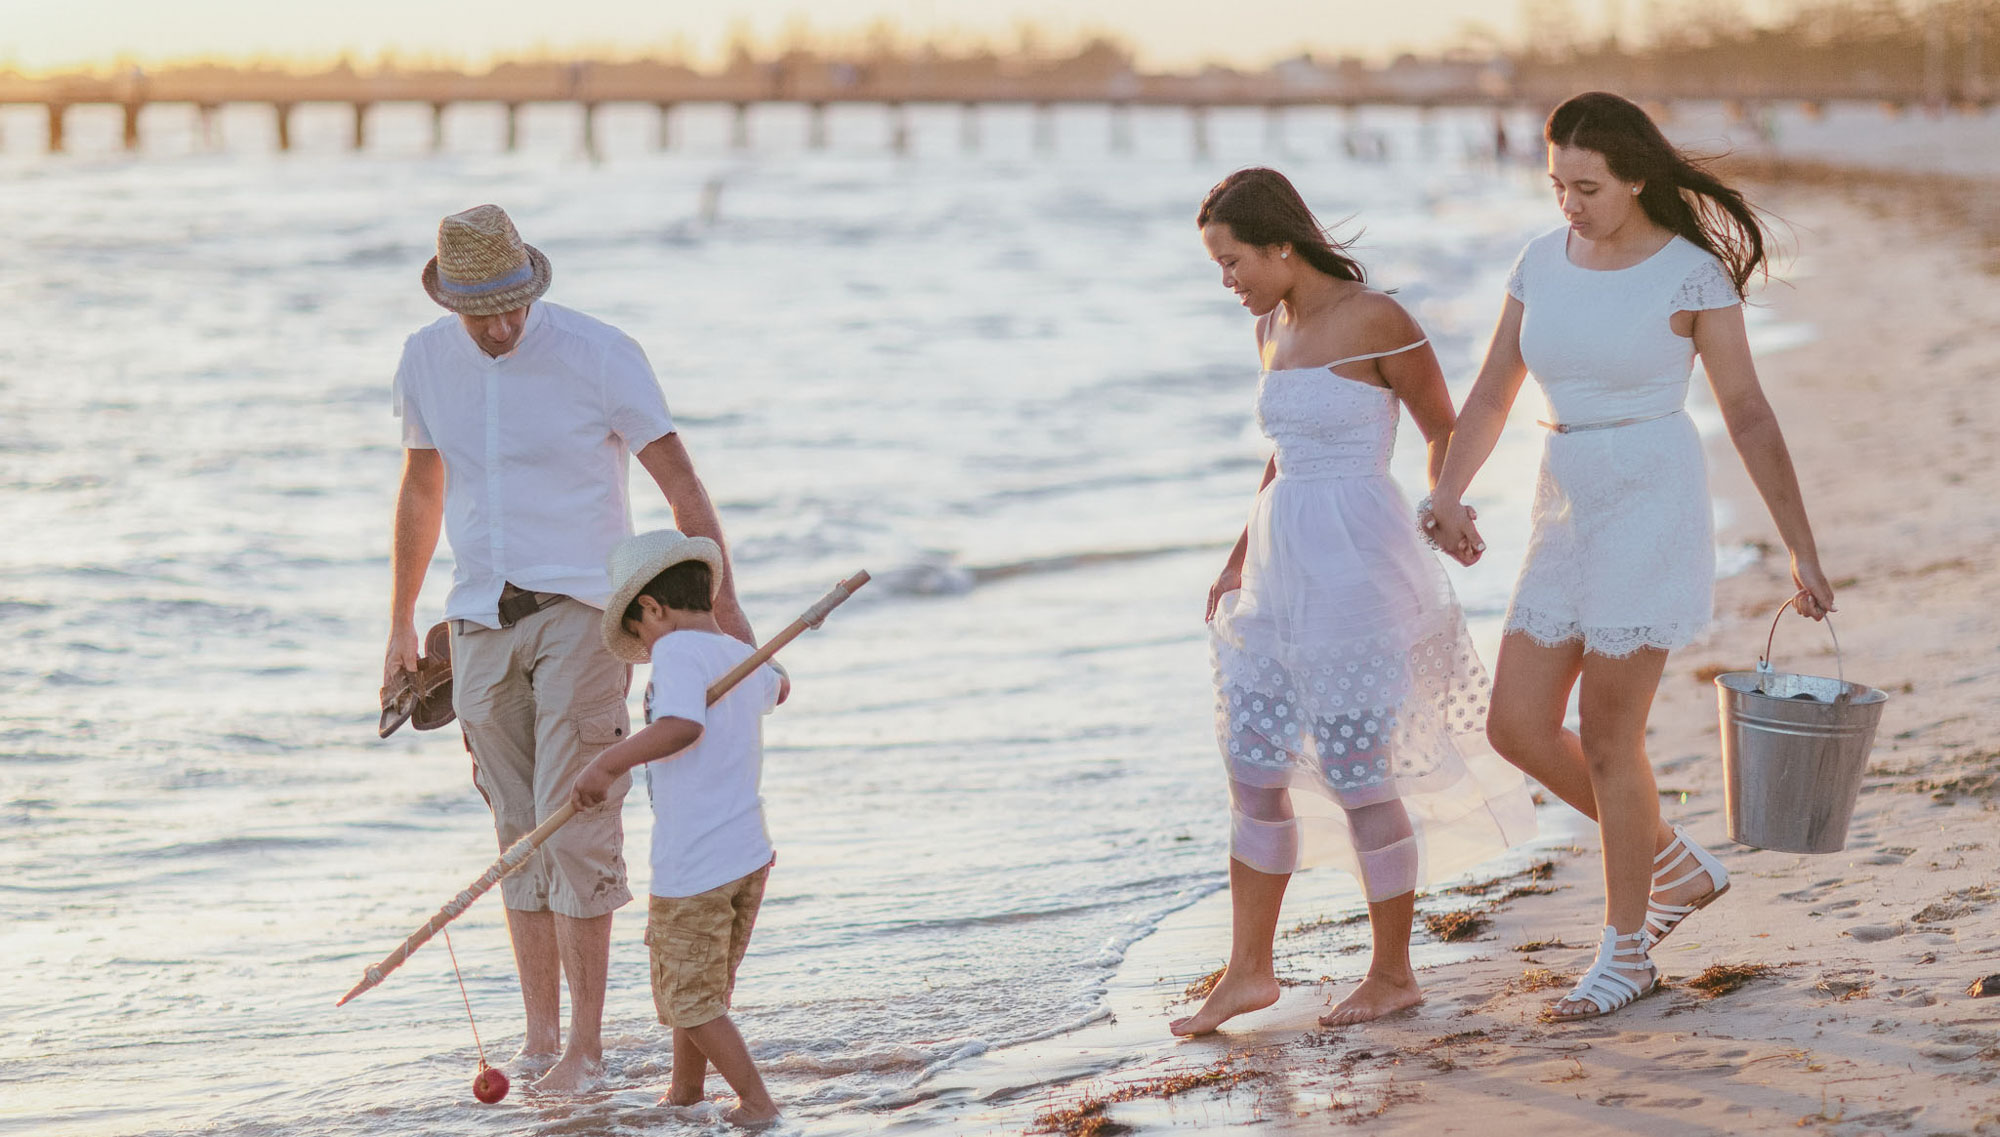 Stunning Family Photography by Pause The Moment